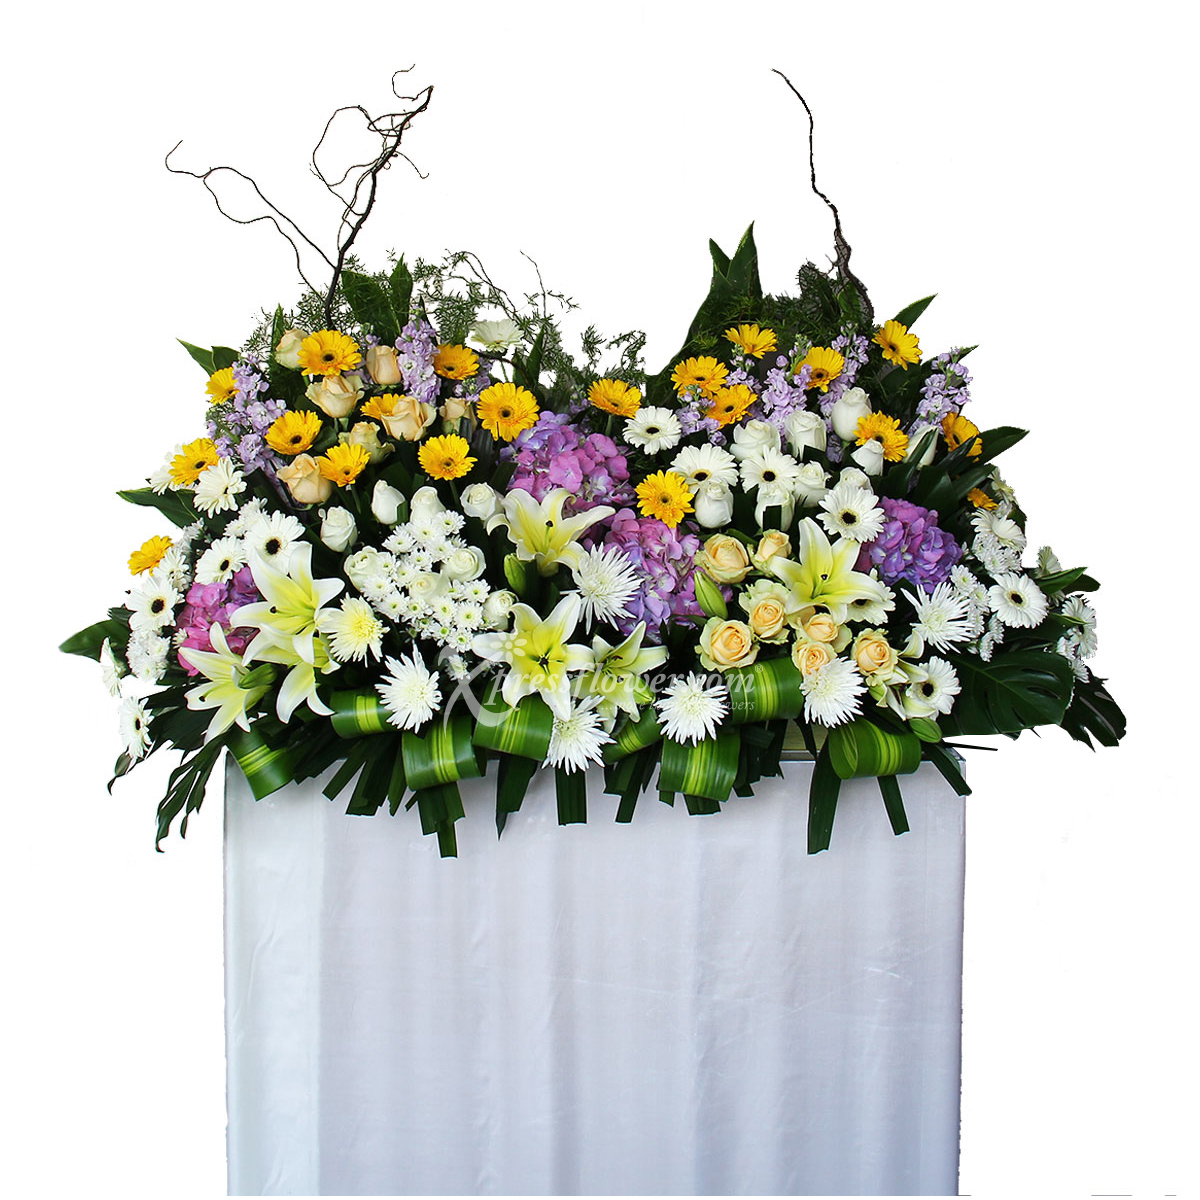 Concluding The End (Wreath)